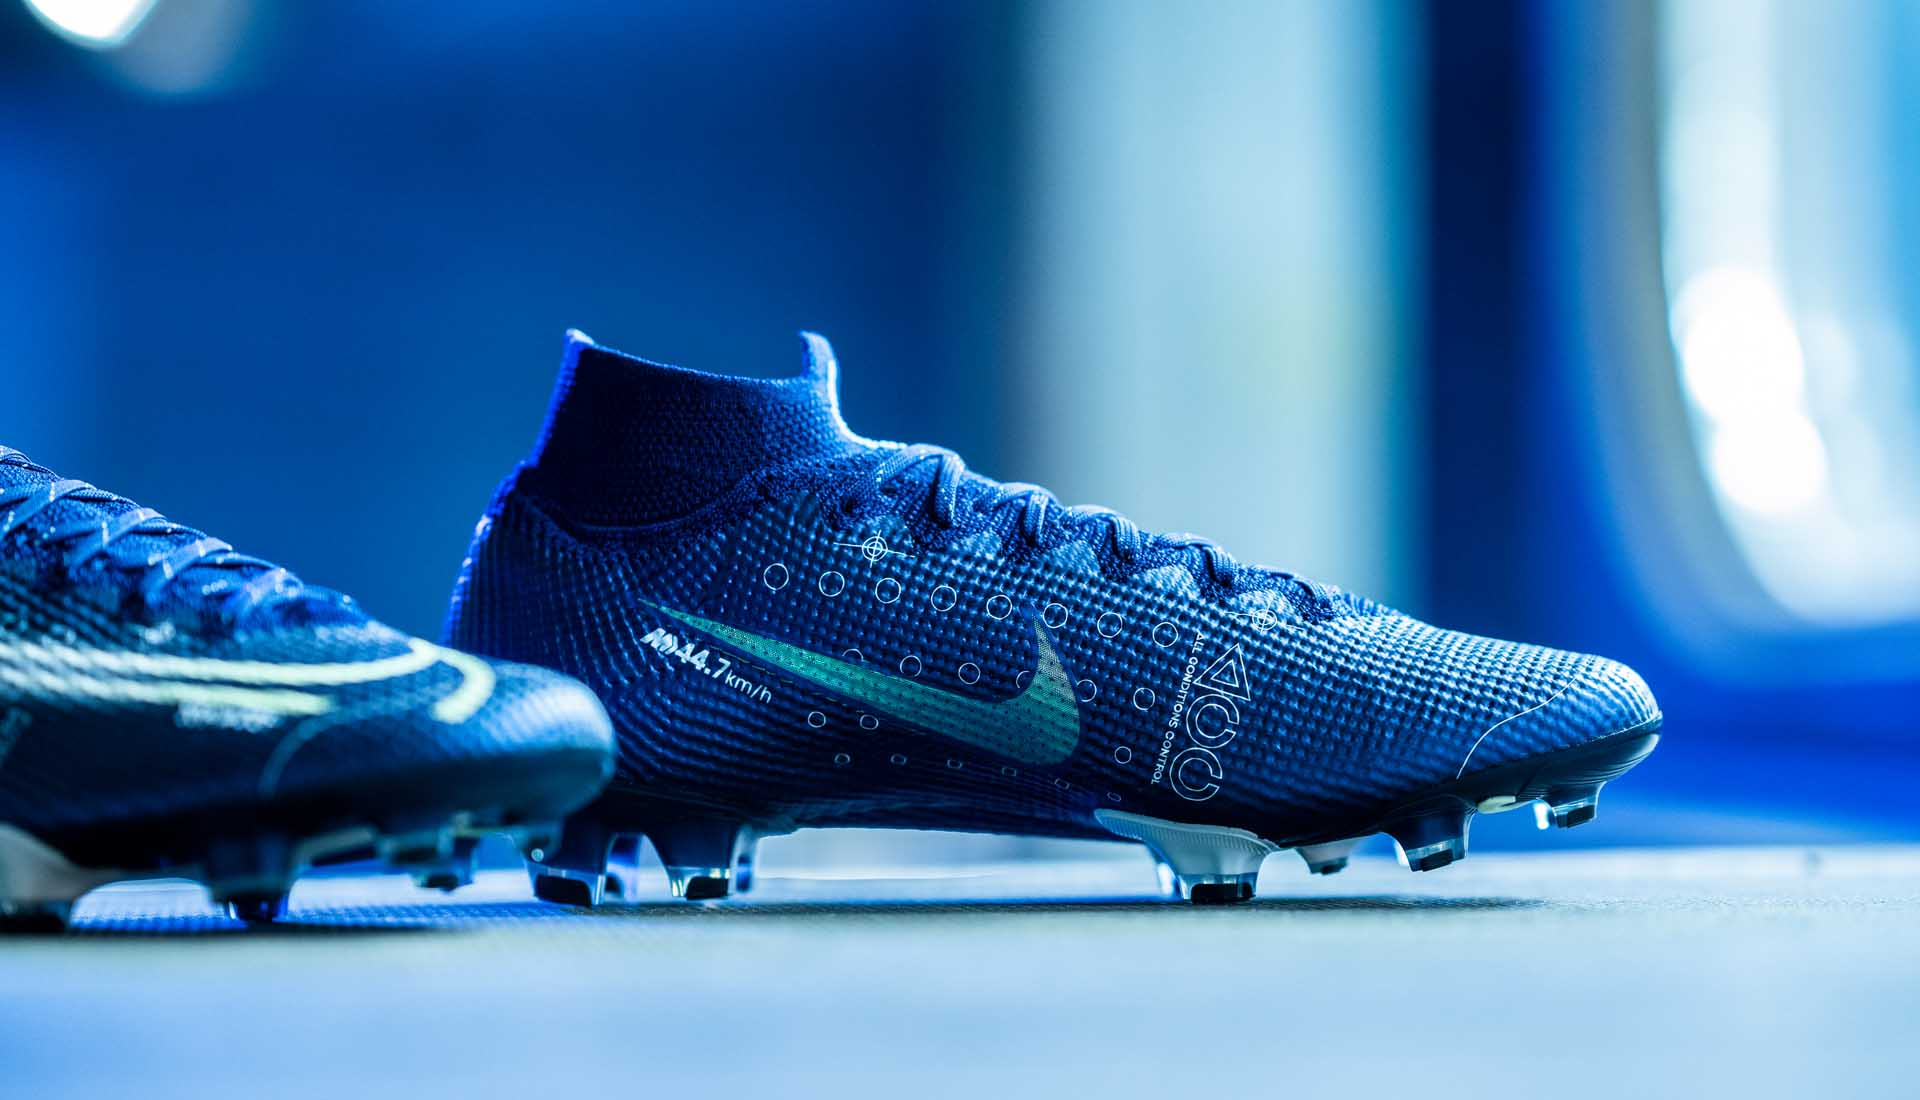 Nike Launch The Mercurial 'Dream Speed' Football Boots - SoccerBible